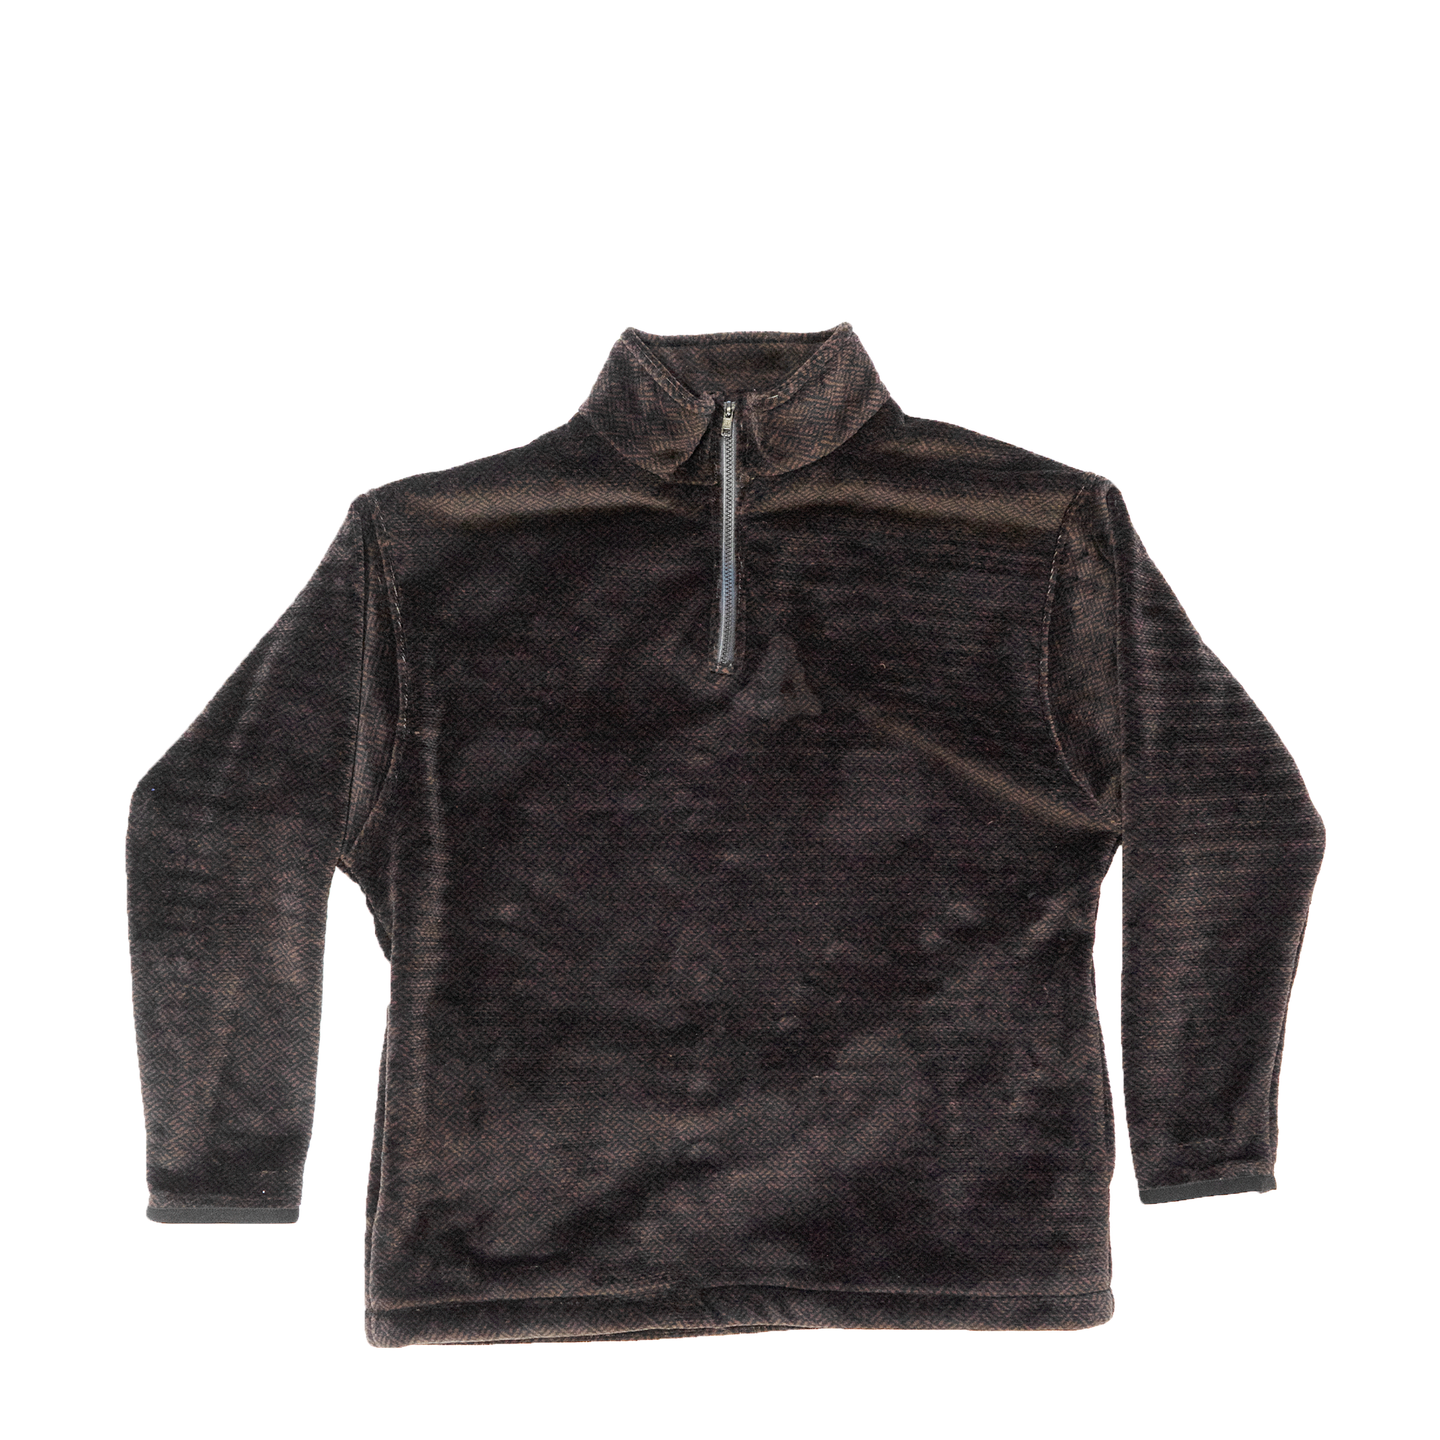 1/4 Zip Fleece in Deadstock Brown & Black Fabric